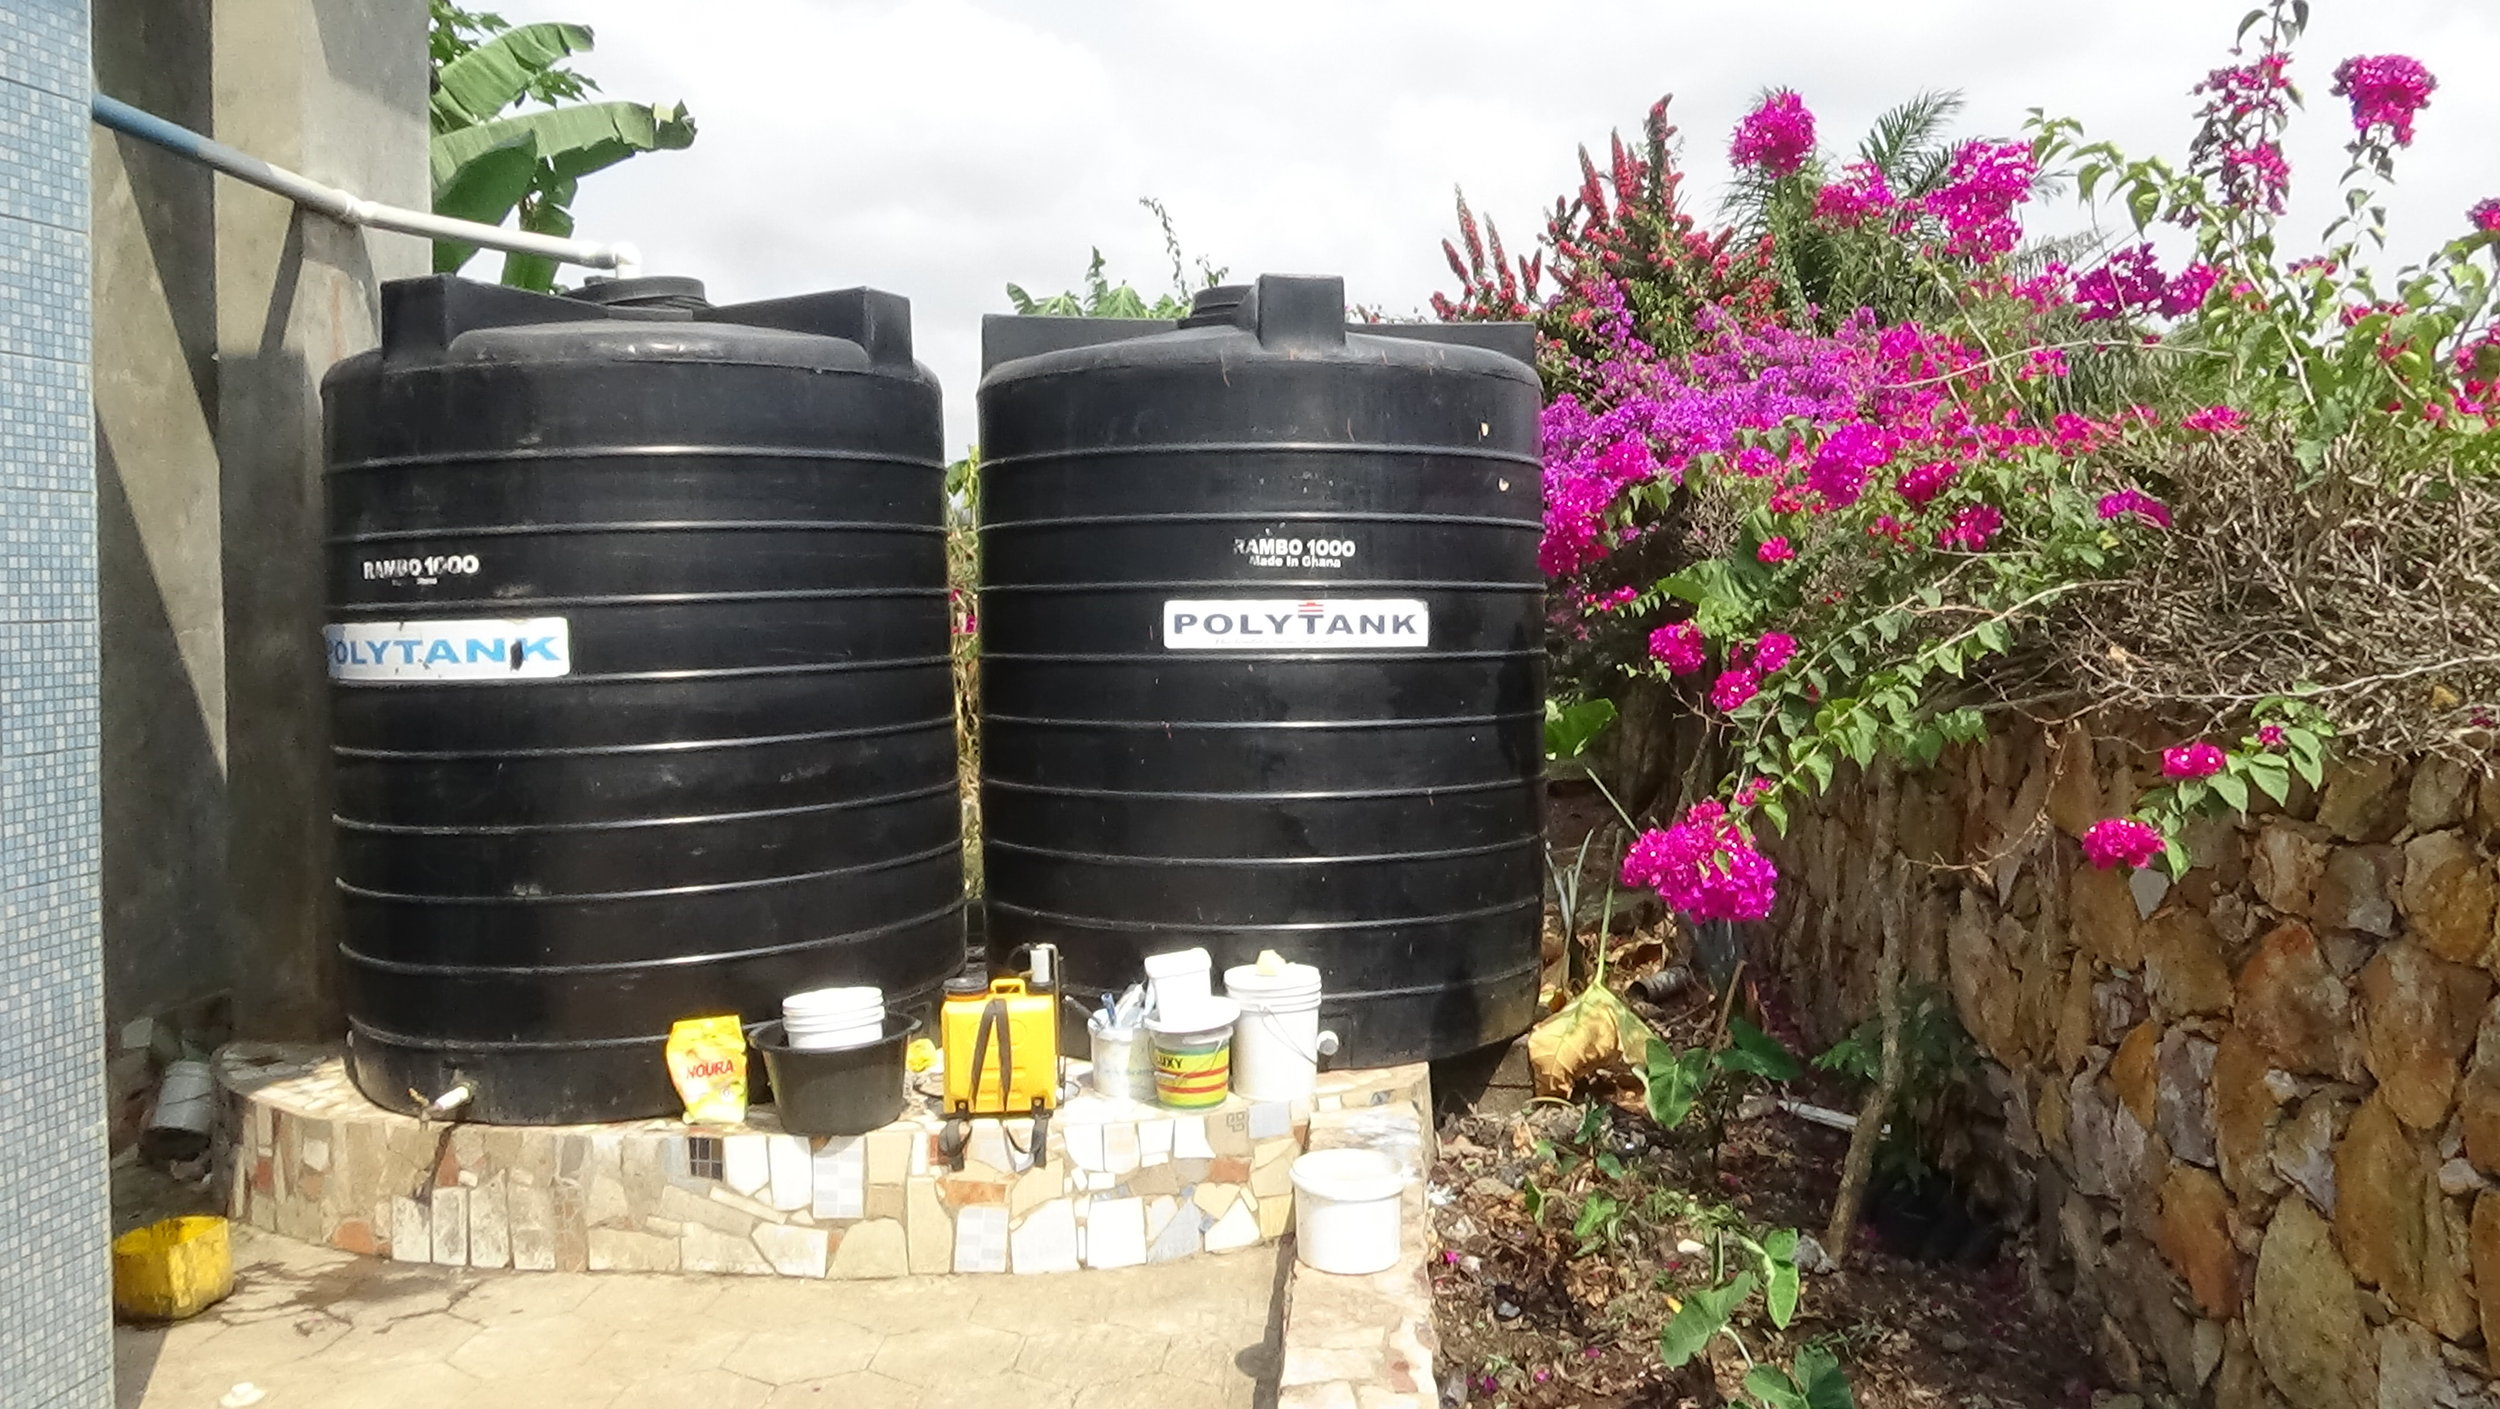 Poly Tanks for water storage.